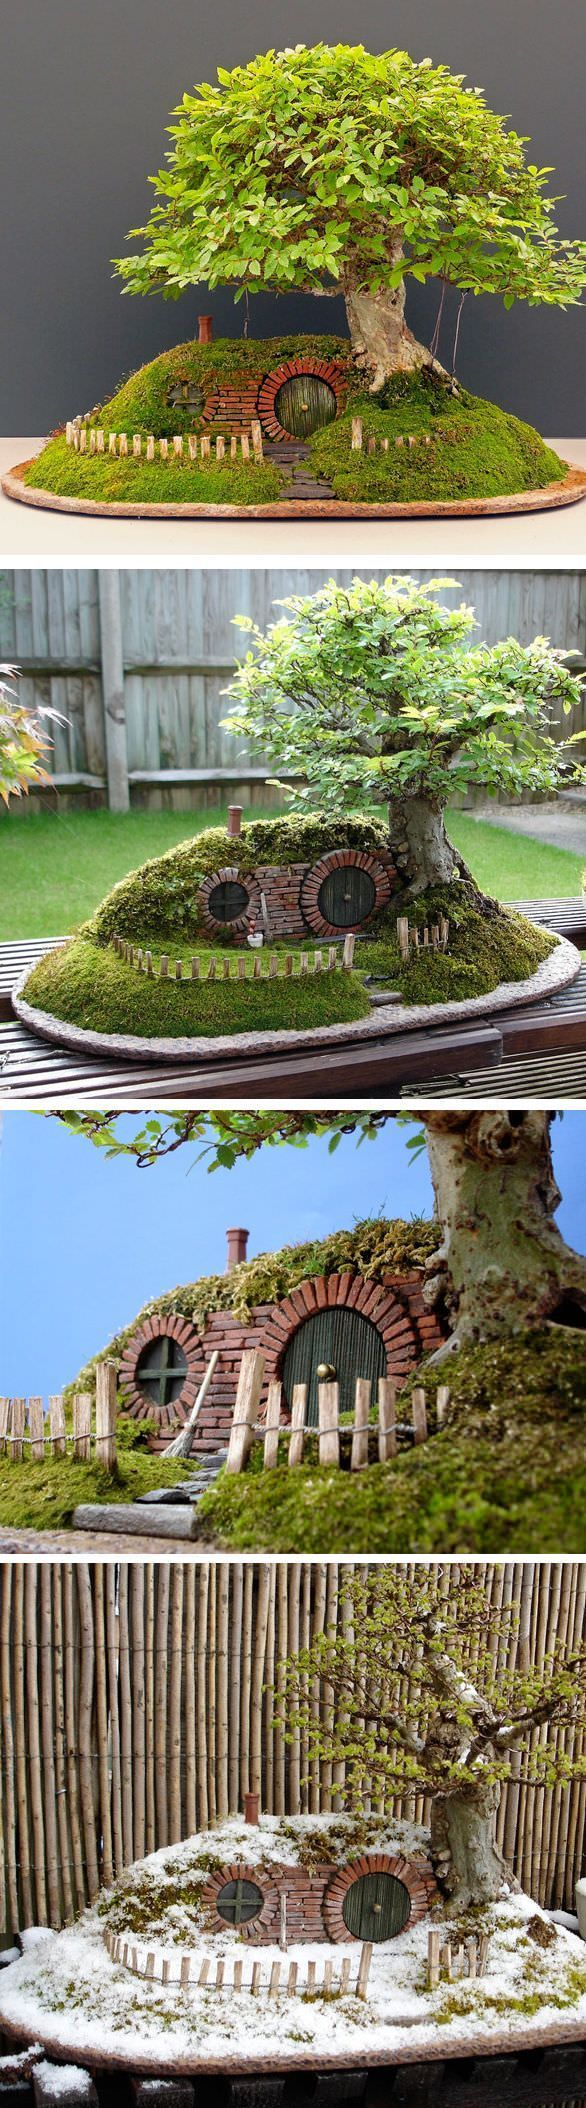 14 Fairy Garden Ideas For Kids At Heart - Hit DIY Crafts